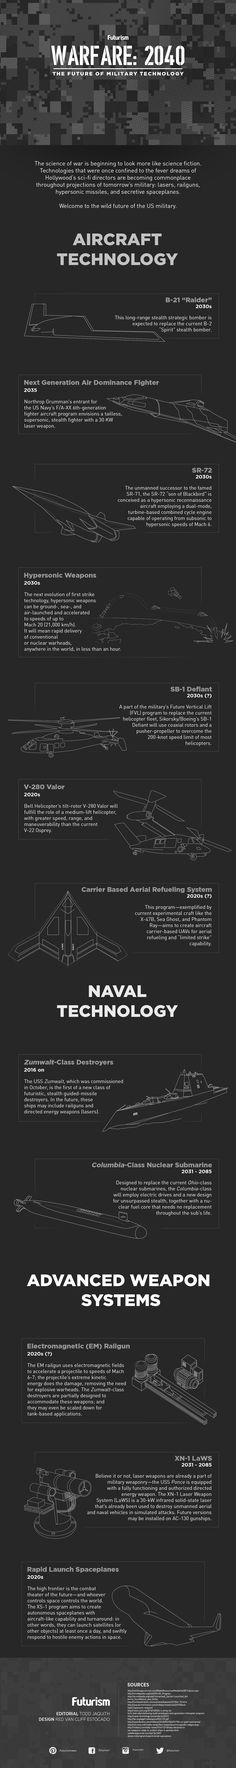 The Future Of Military Technology #Infographic #Military #Technology